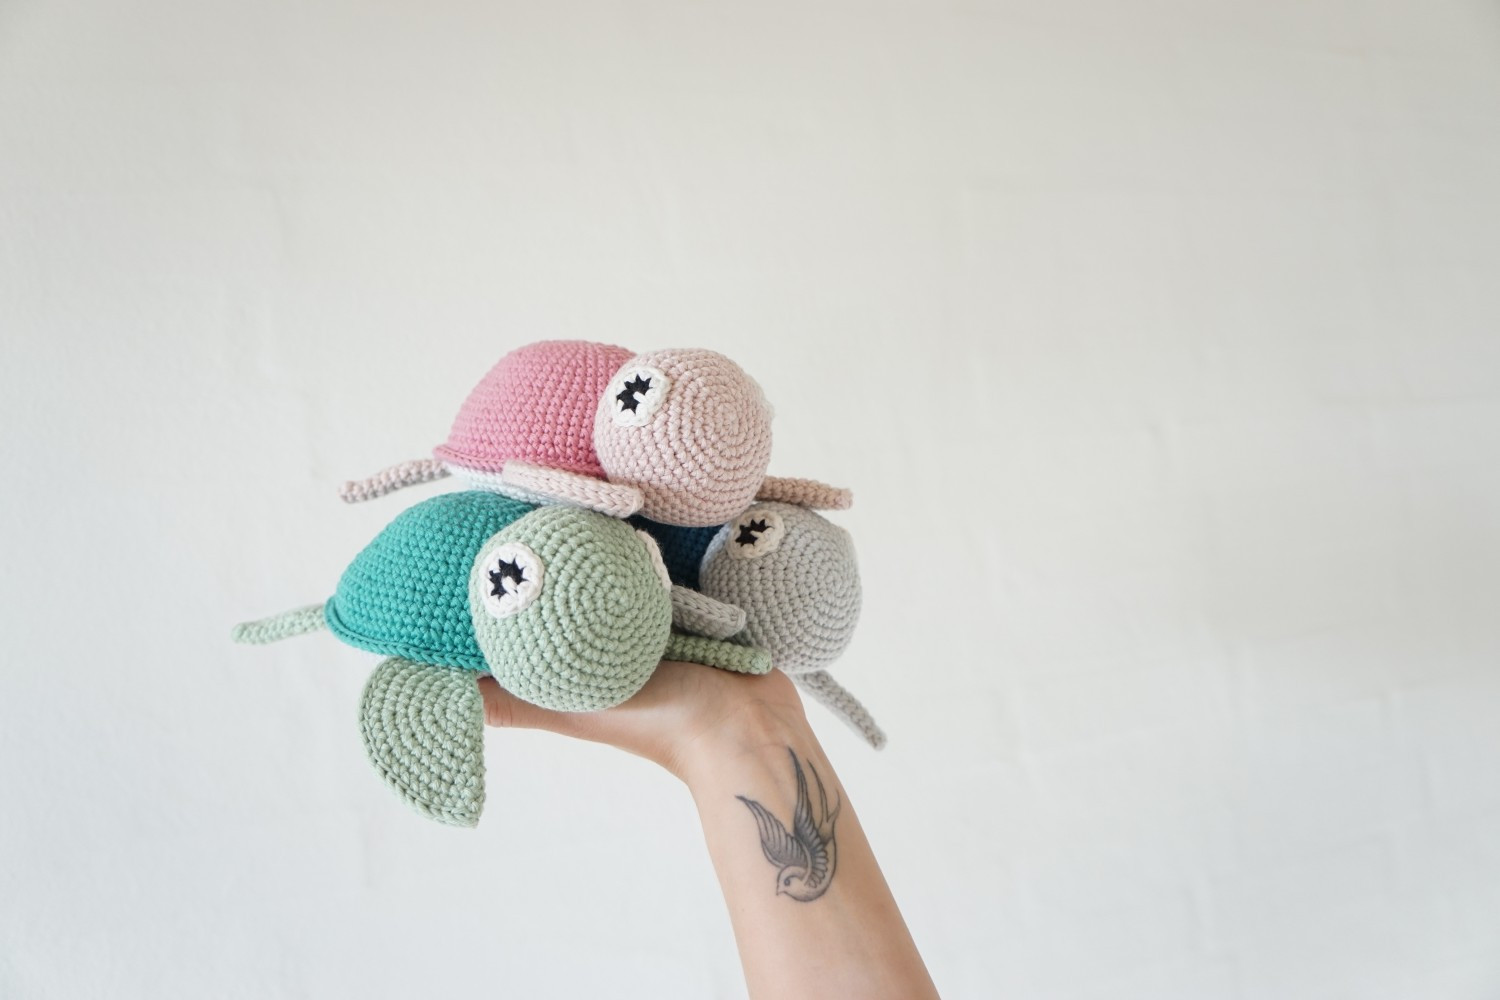 Lovely Amigurumi Turtle Free Pattern Amigurumi Free Patterns Crochet Turtle Of Innovative 48 Images Crochet Turtle